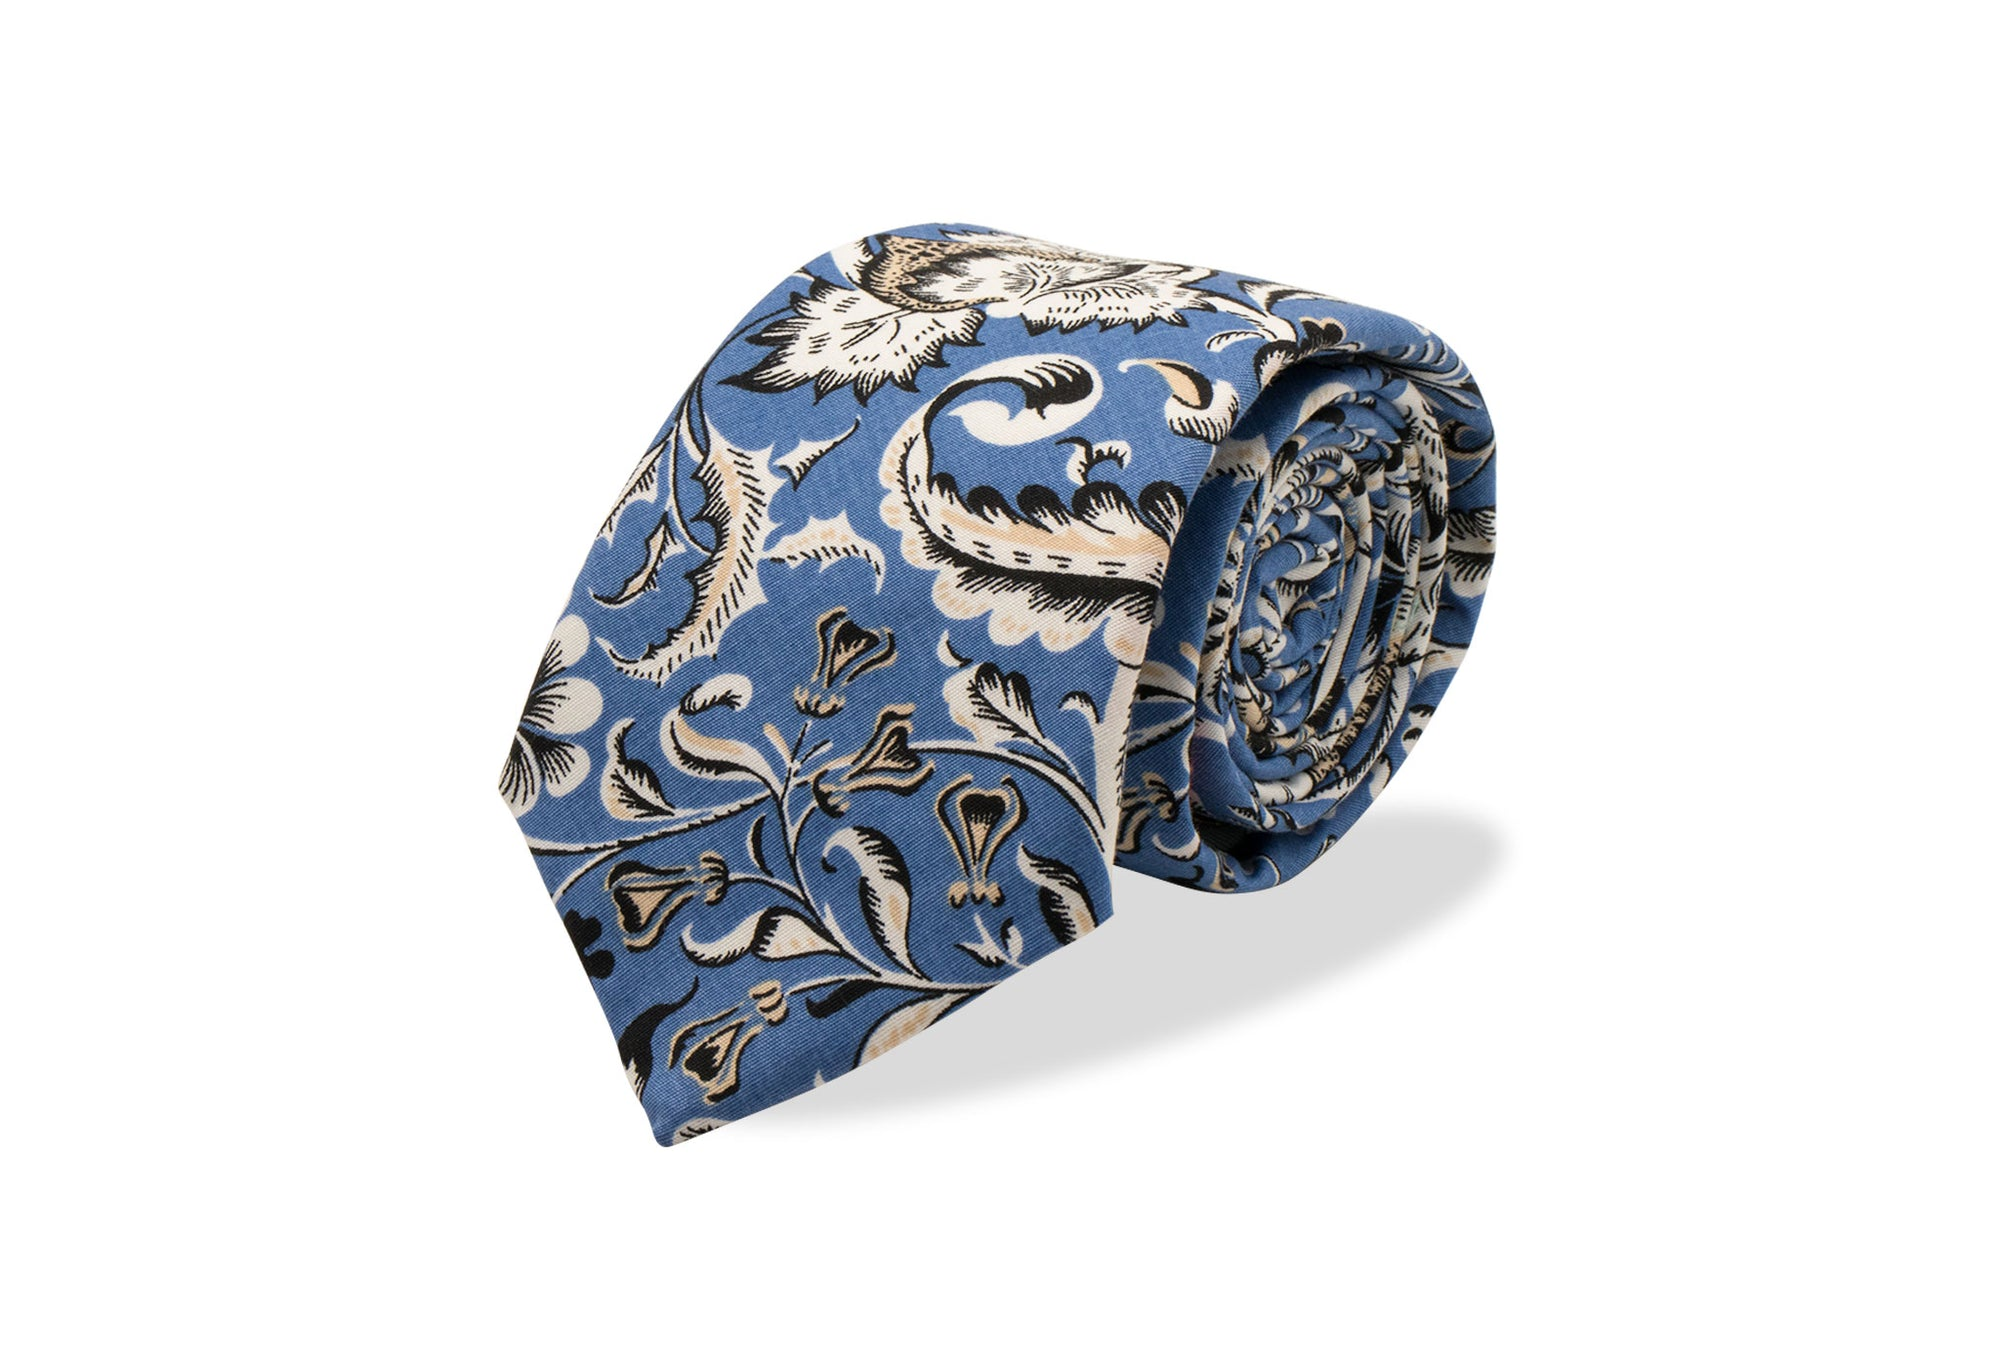 Makkari Japanese Cotton Tie